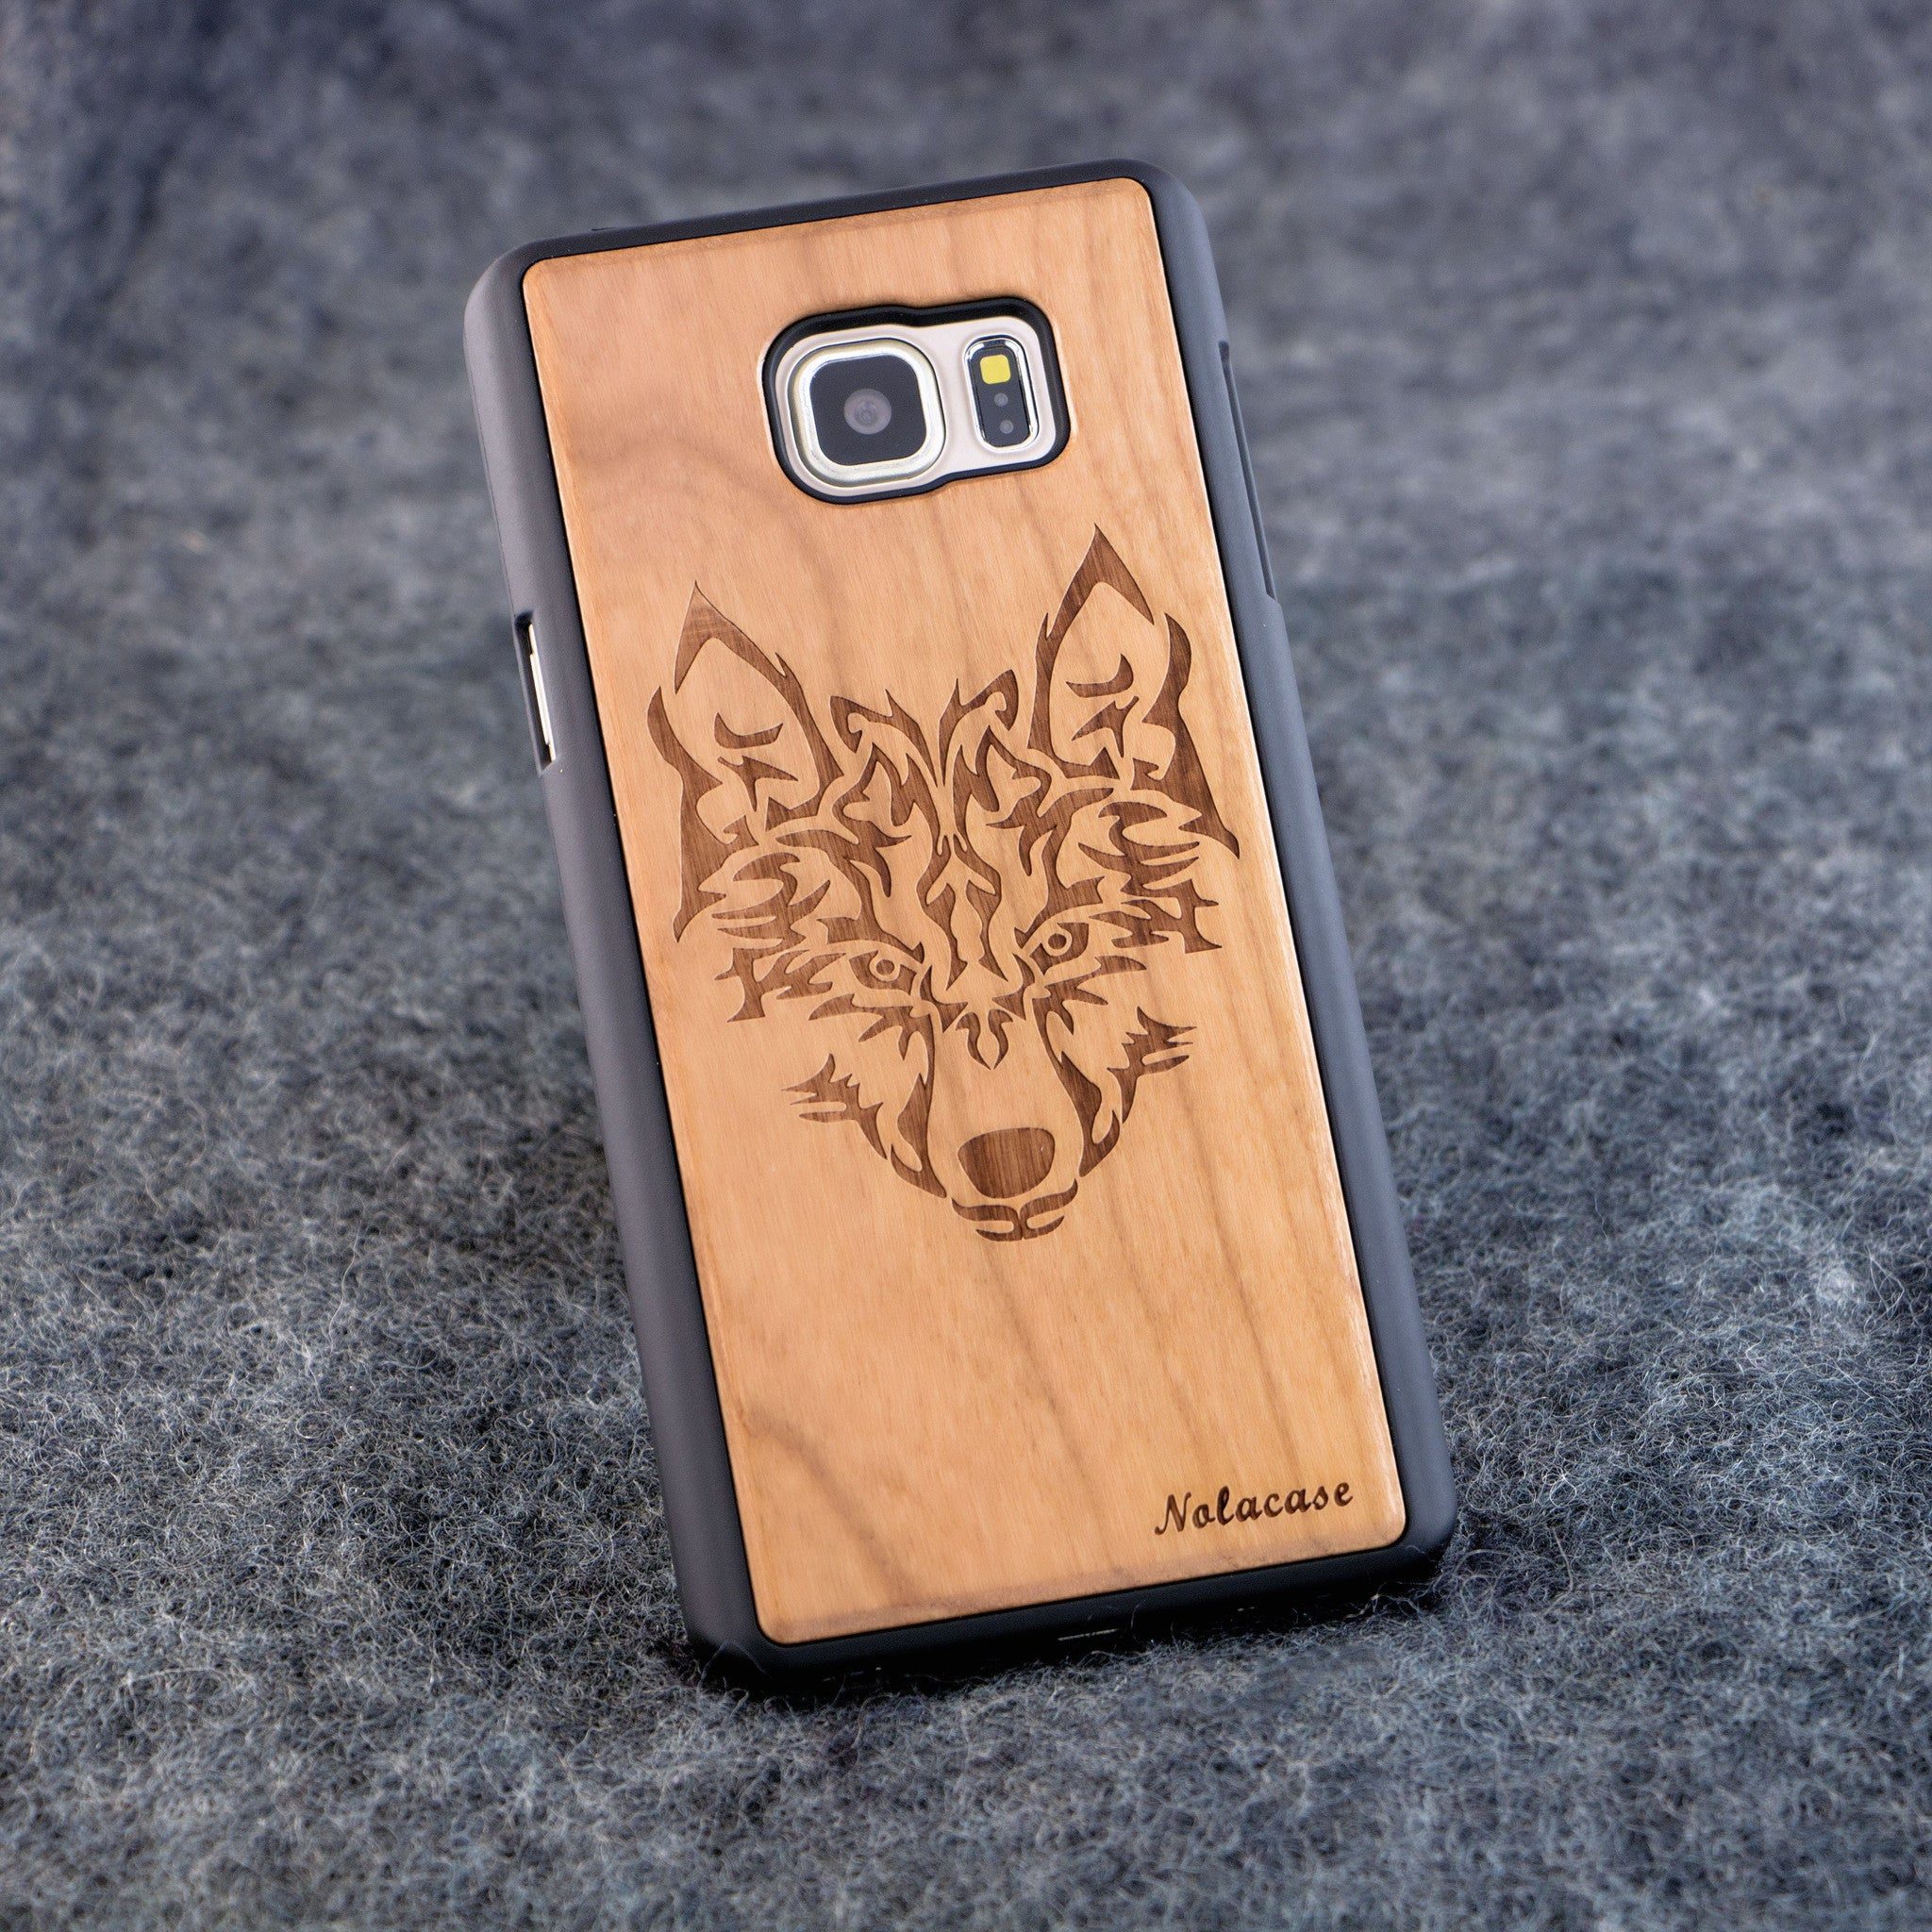 Samsung Note 5 Wolf Head Slim Wood Case - NOLACASE